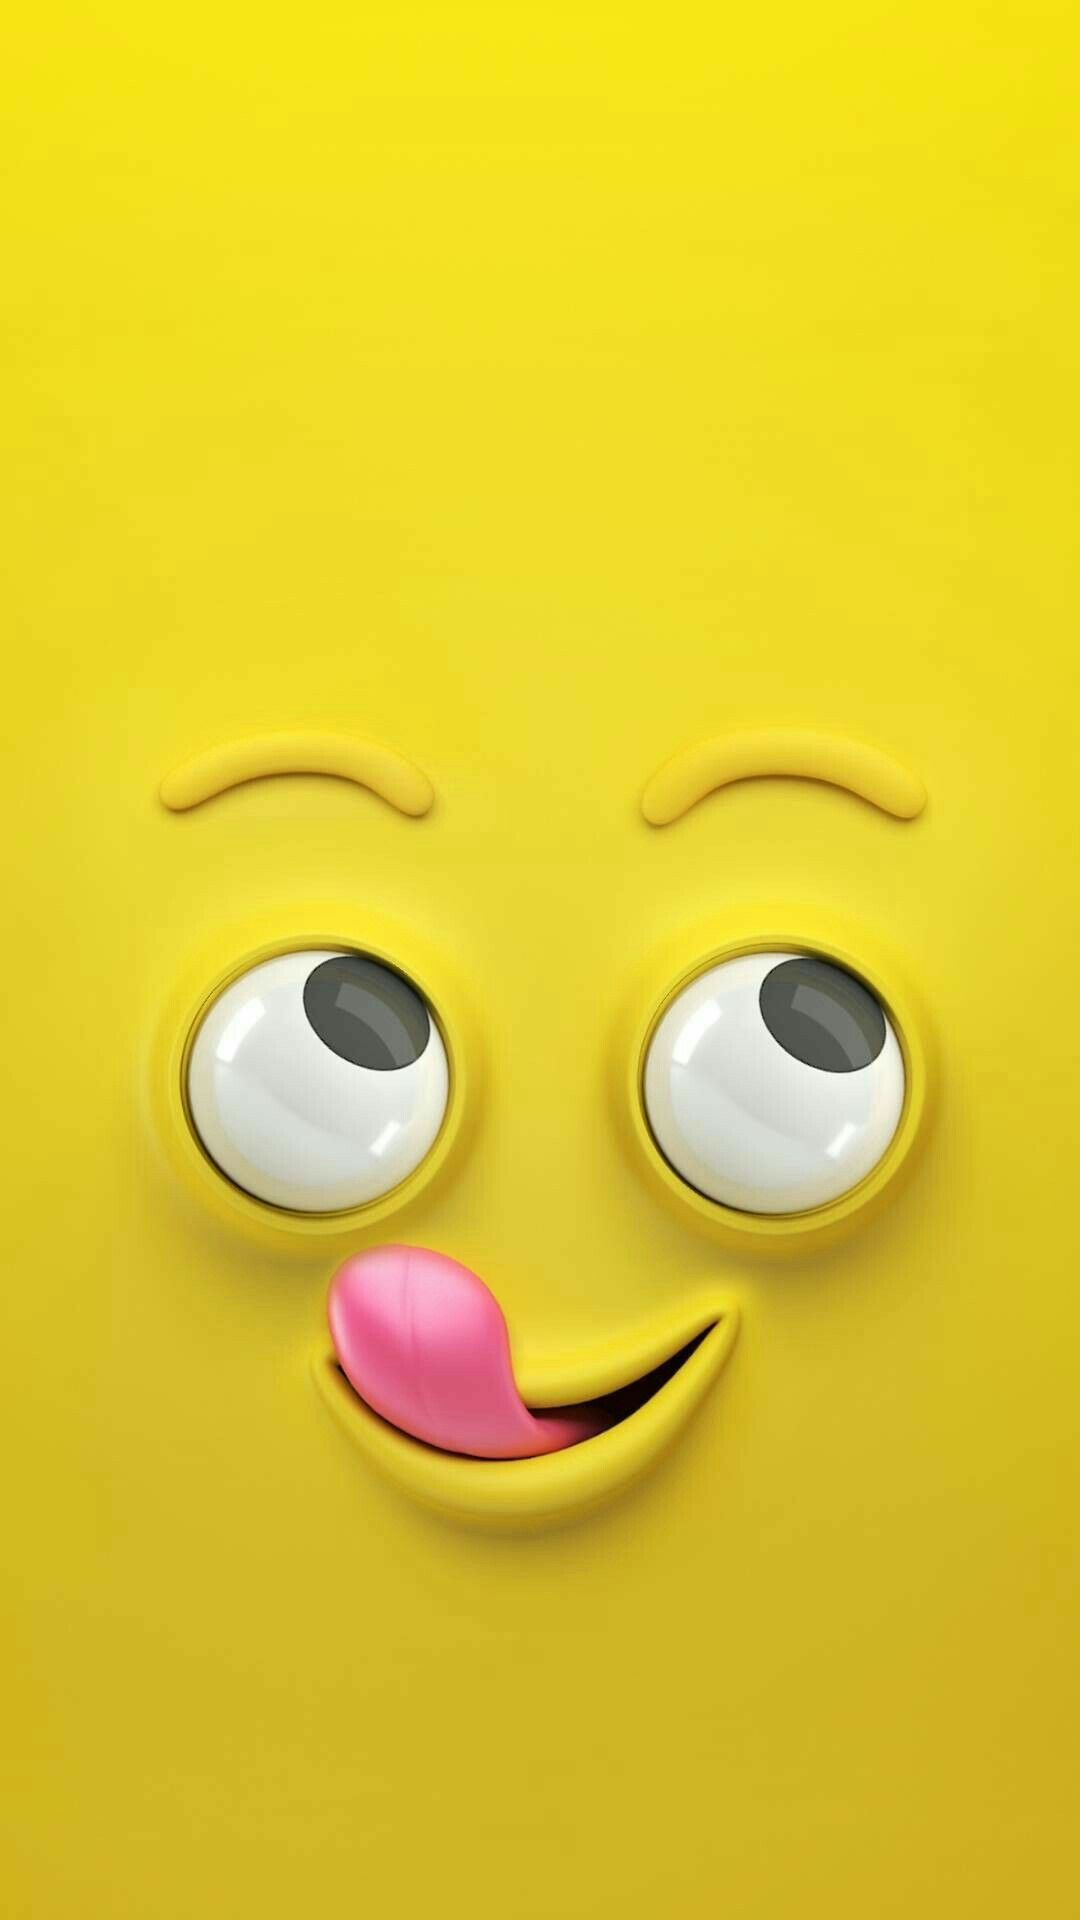 Pin By Fadhl On Al Funny Iphone Wallpaper Android Wallpaper Cute Cartoon Wallpapers